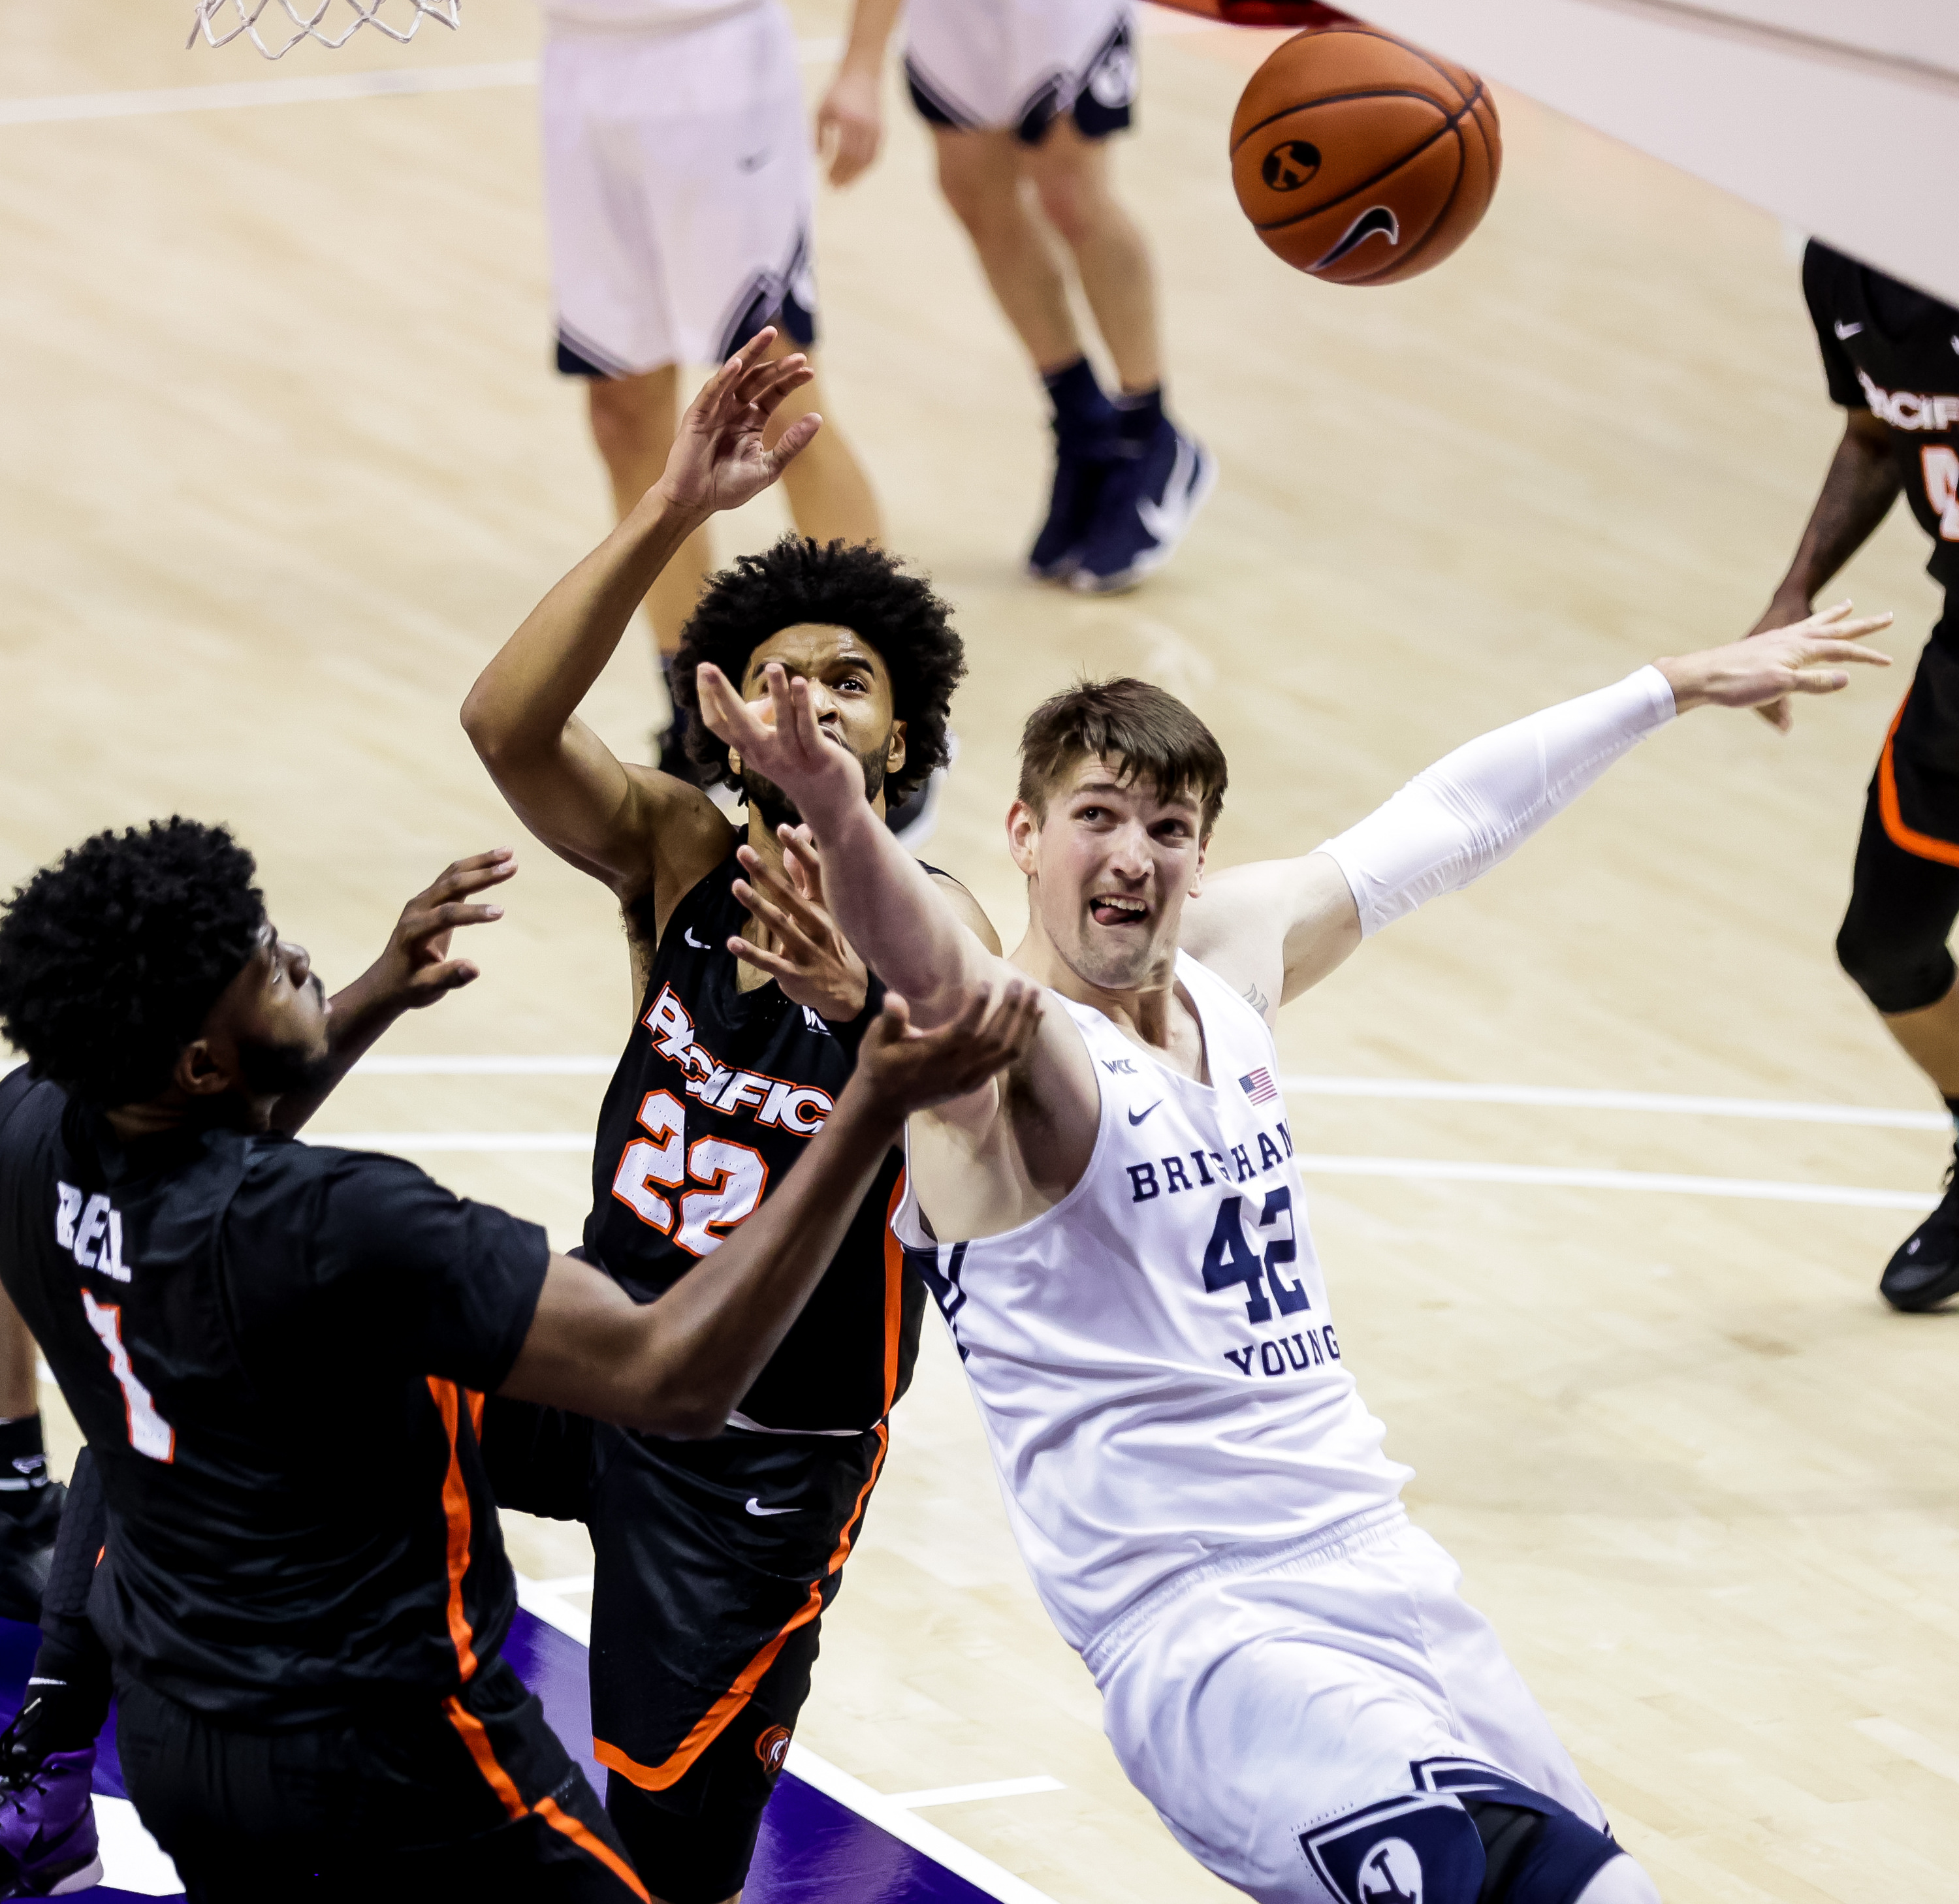 Brigham Young Cougars center Richard Harward (42) tangles with Pacific Tigers forward Jordan Bell (1) and guard Jahbril Price-Noel (22) on a rebound at the Marriott Center in Provo on Saturday, Jan. 30, 2021.